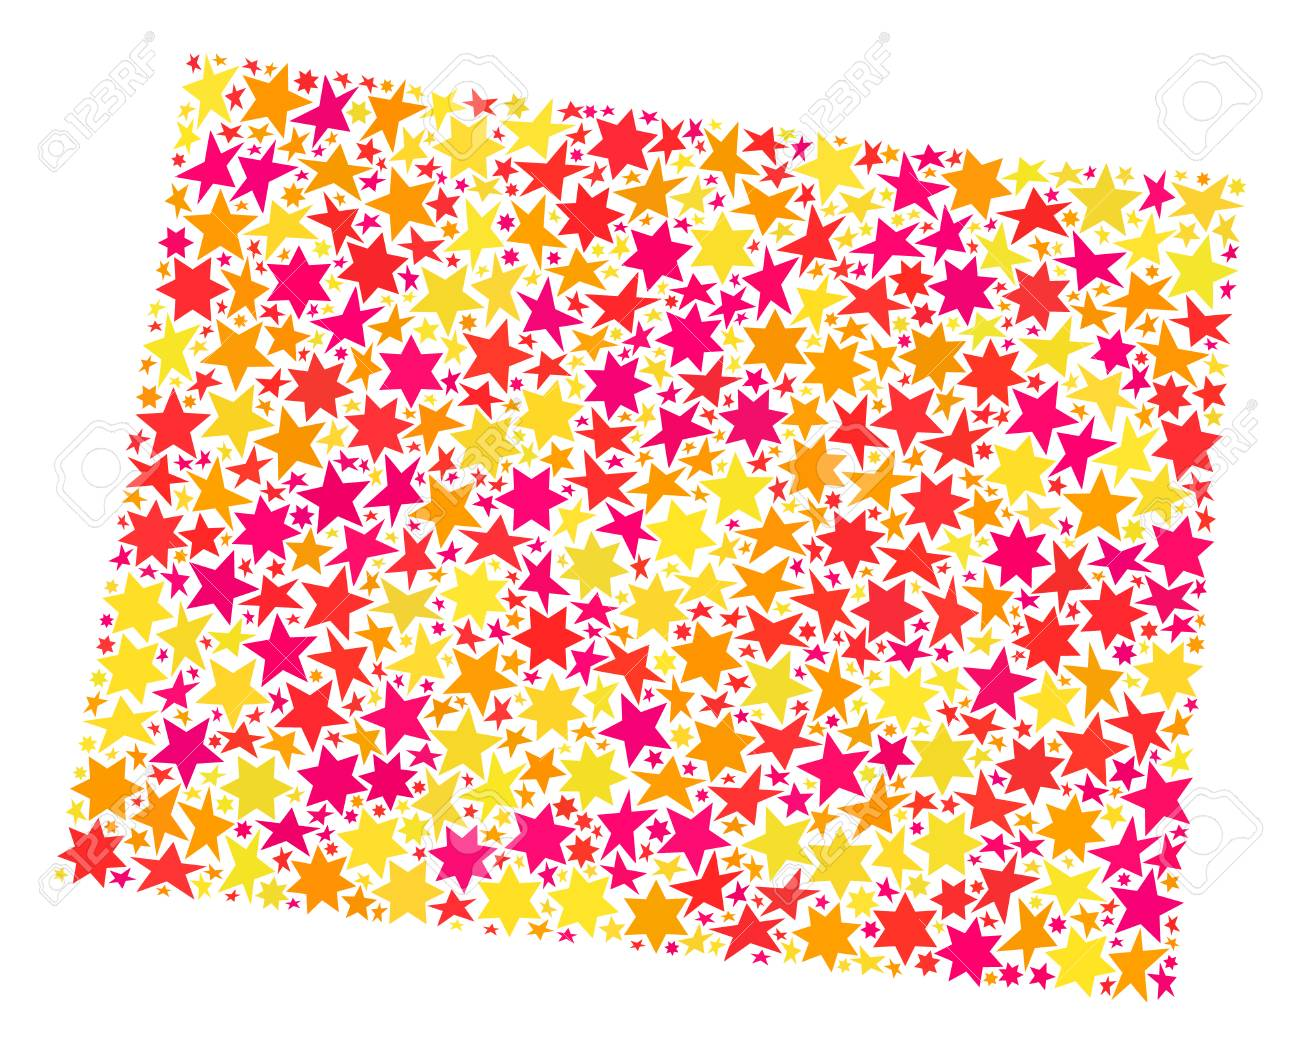 Map Of Wyoming State Created With Colored Flat Stars. Vector ...